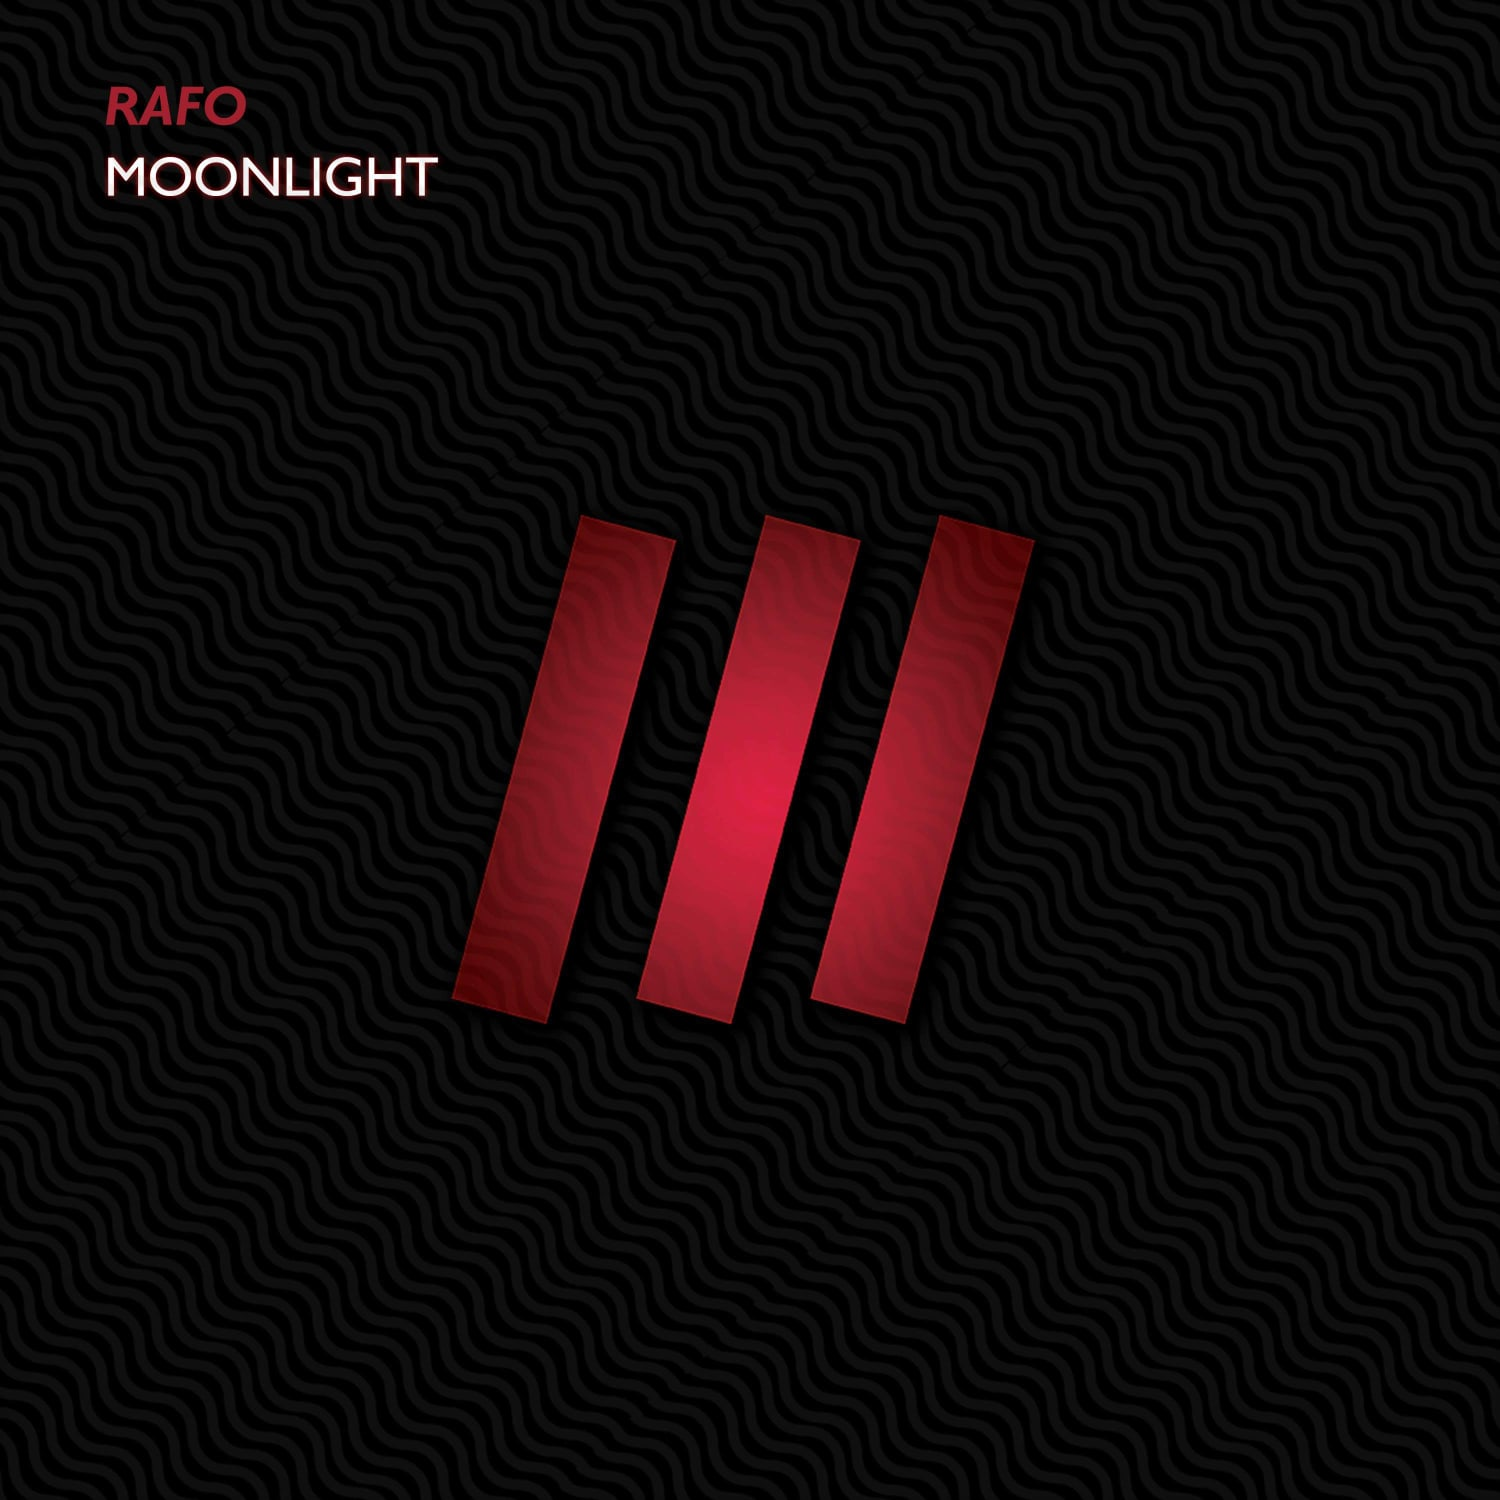 """RAFO - """"Moonlight"""" Remix Contest by WameRecords"""